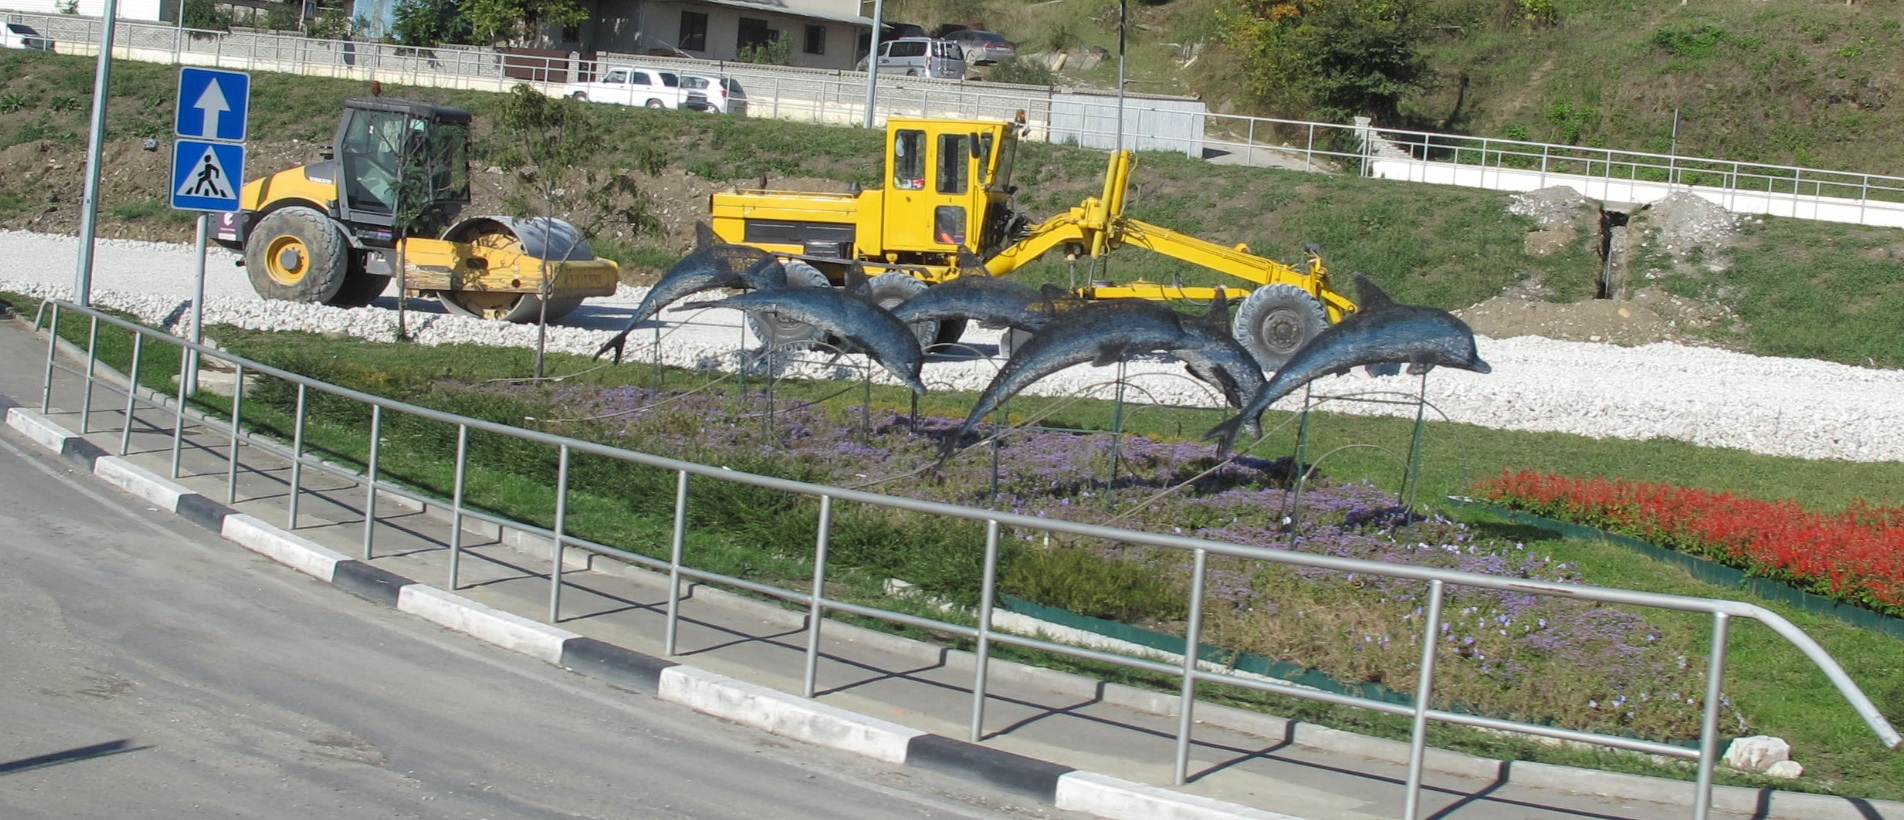 This sculpture of Black Sea dolphins sits near the Sochi airport entrance. A dolphin was one of the Olympic mascot candidates favored by local residents, but it didn't make the final cut (a polar bear, a snow leopard and a hare were chosen instead). Environmentalists have been concerned in recent years by the dwindling number of Black Sea bottlenose dolphins, which have fallen victim to poaching and pollution.